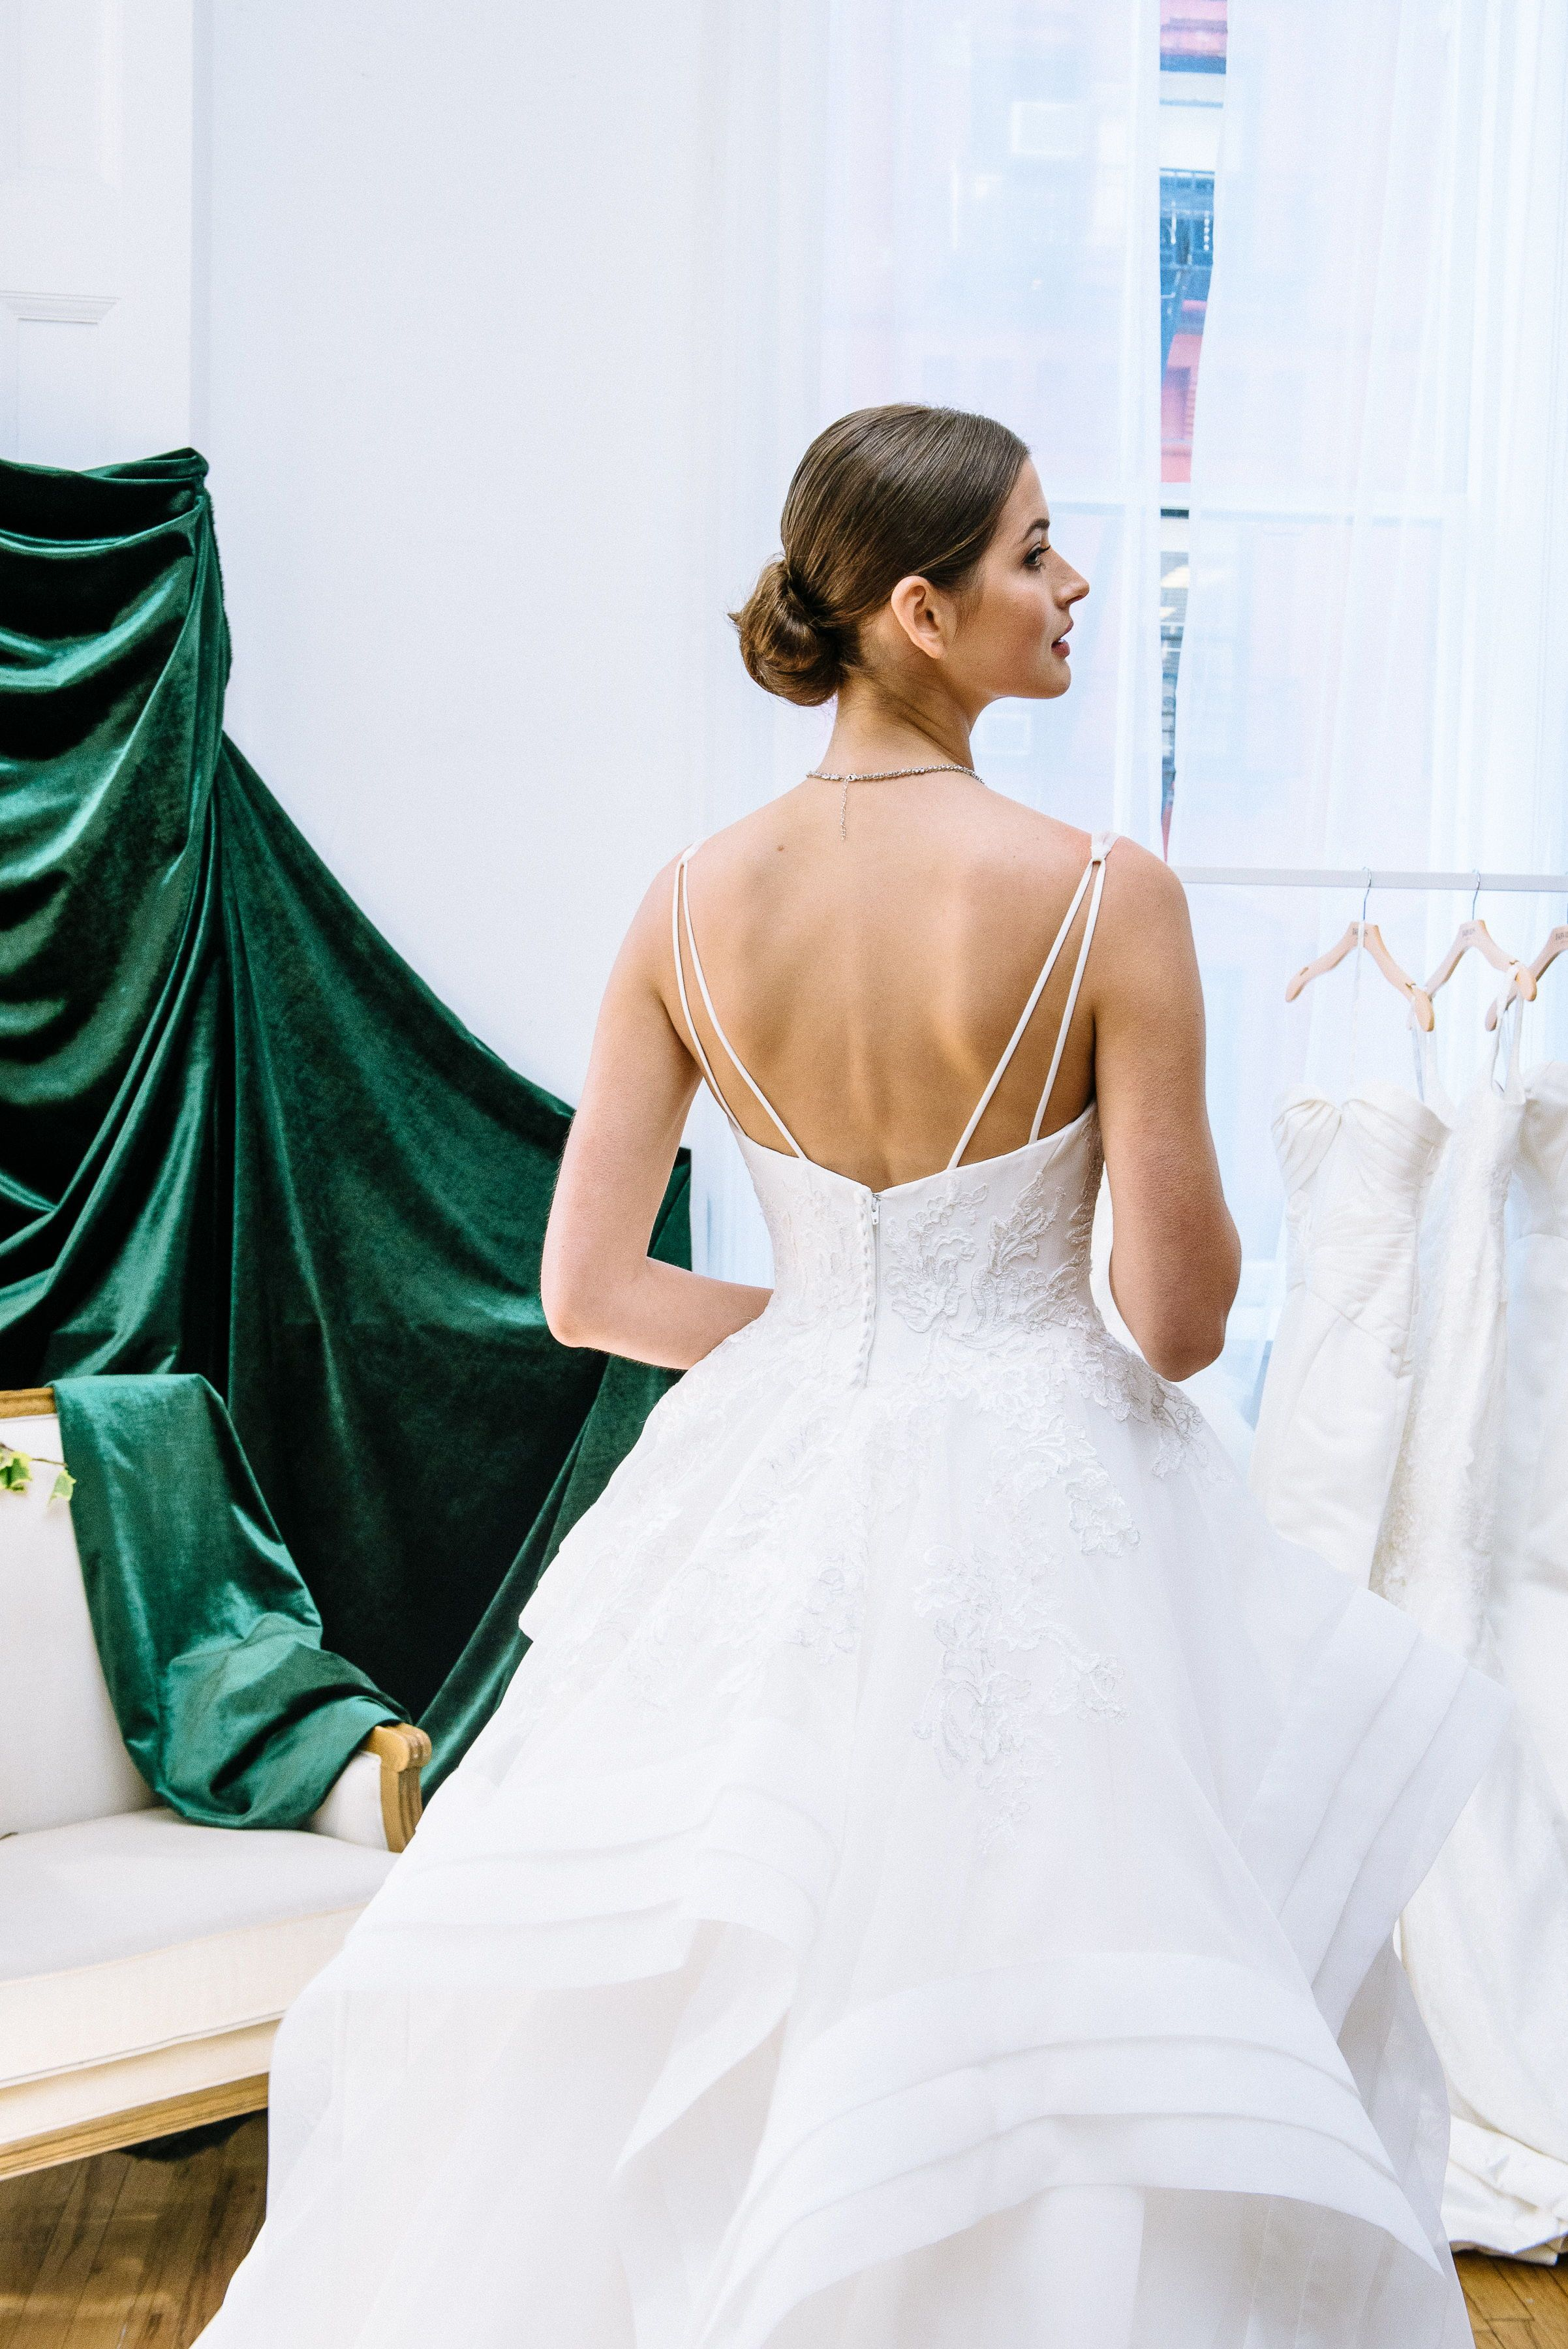 Inspired By The Runway Looks Of Zac Posen S Namesake Collection This Breathtaking Ball Gown Is The Mar Ball Gown Wedding Dress Bridal Elegance Wedding Dresses [ 3600 x 2403 Pixel ]